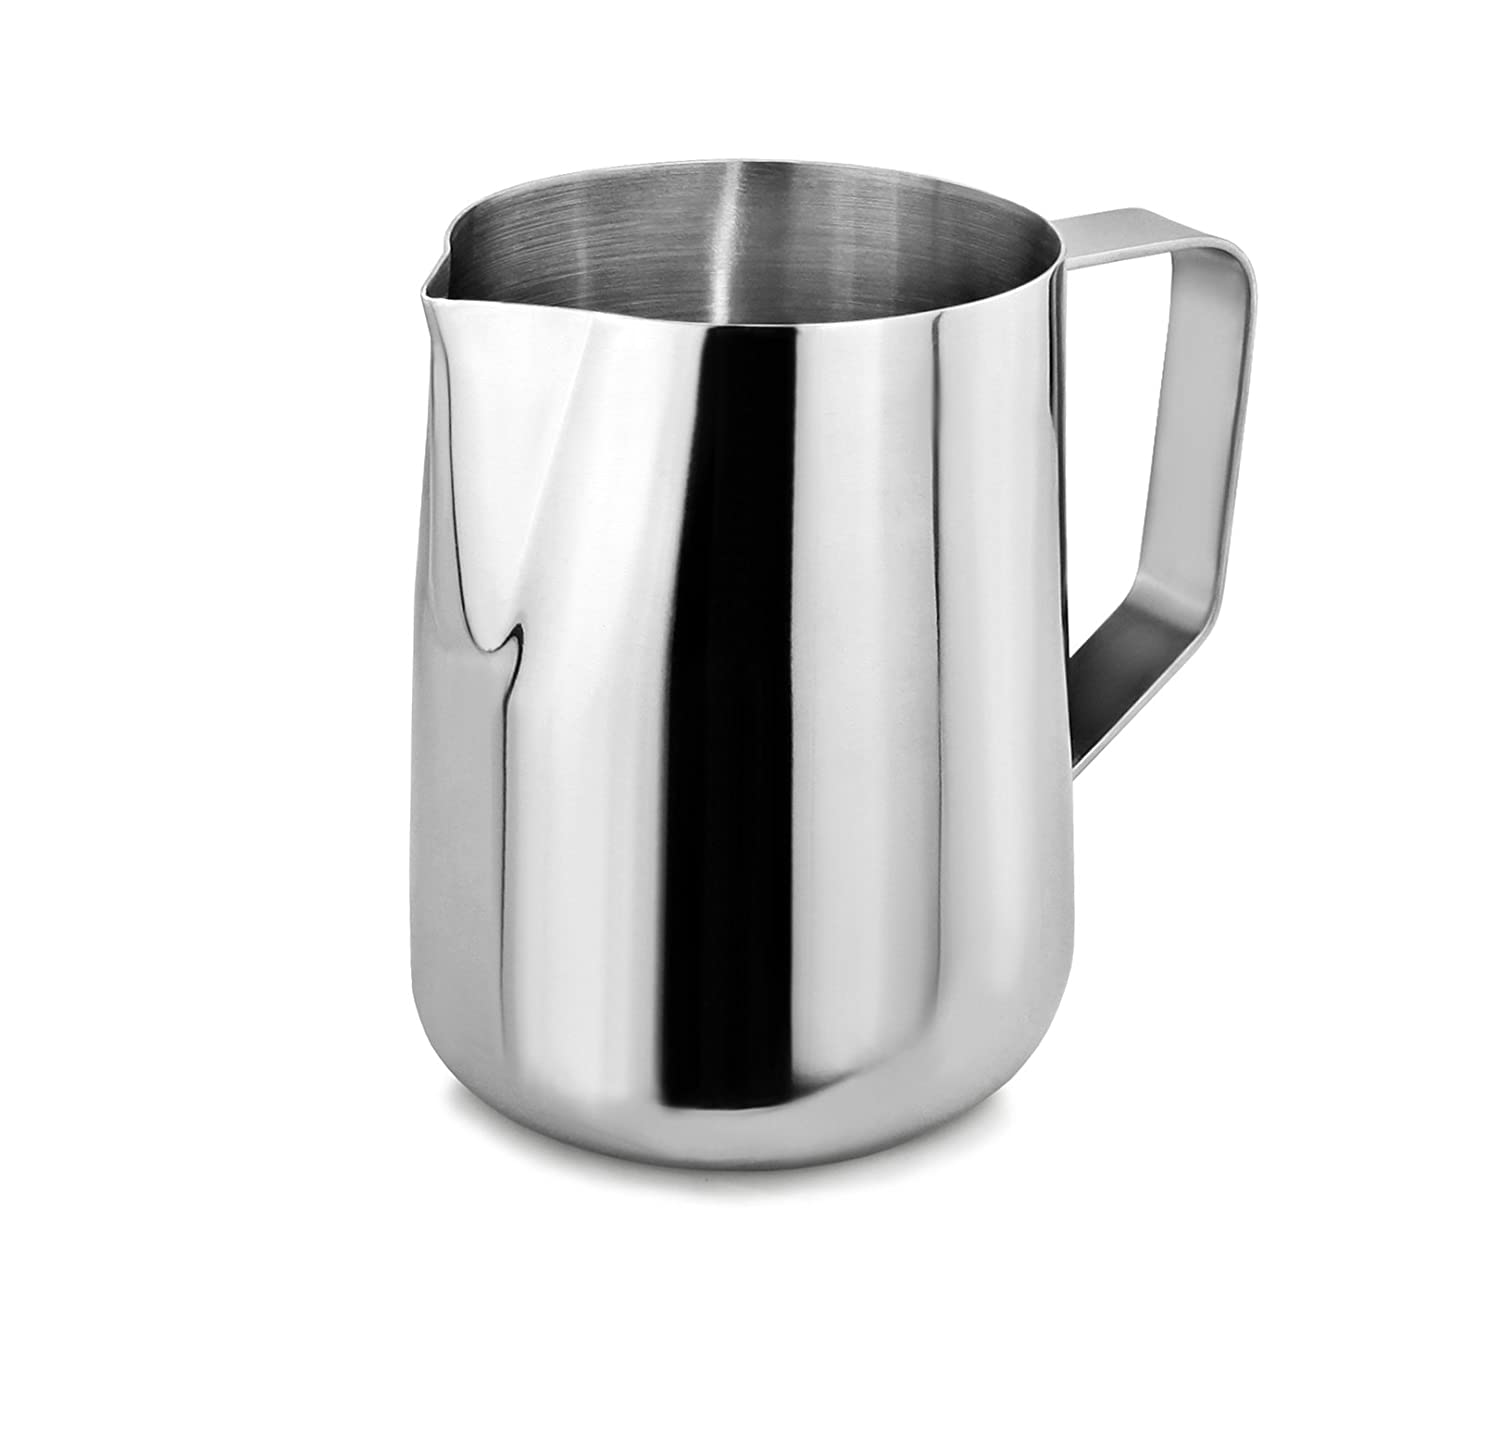 New Star Foodservice 28812 Commercial Grade Stainless Steel 18/8 Frothing Pitcher, 20 oz, Silver